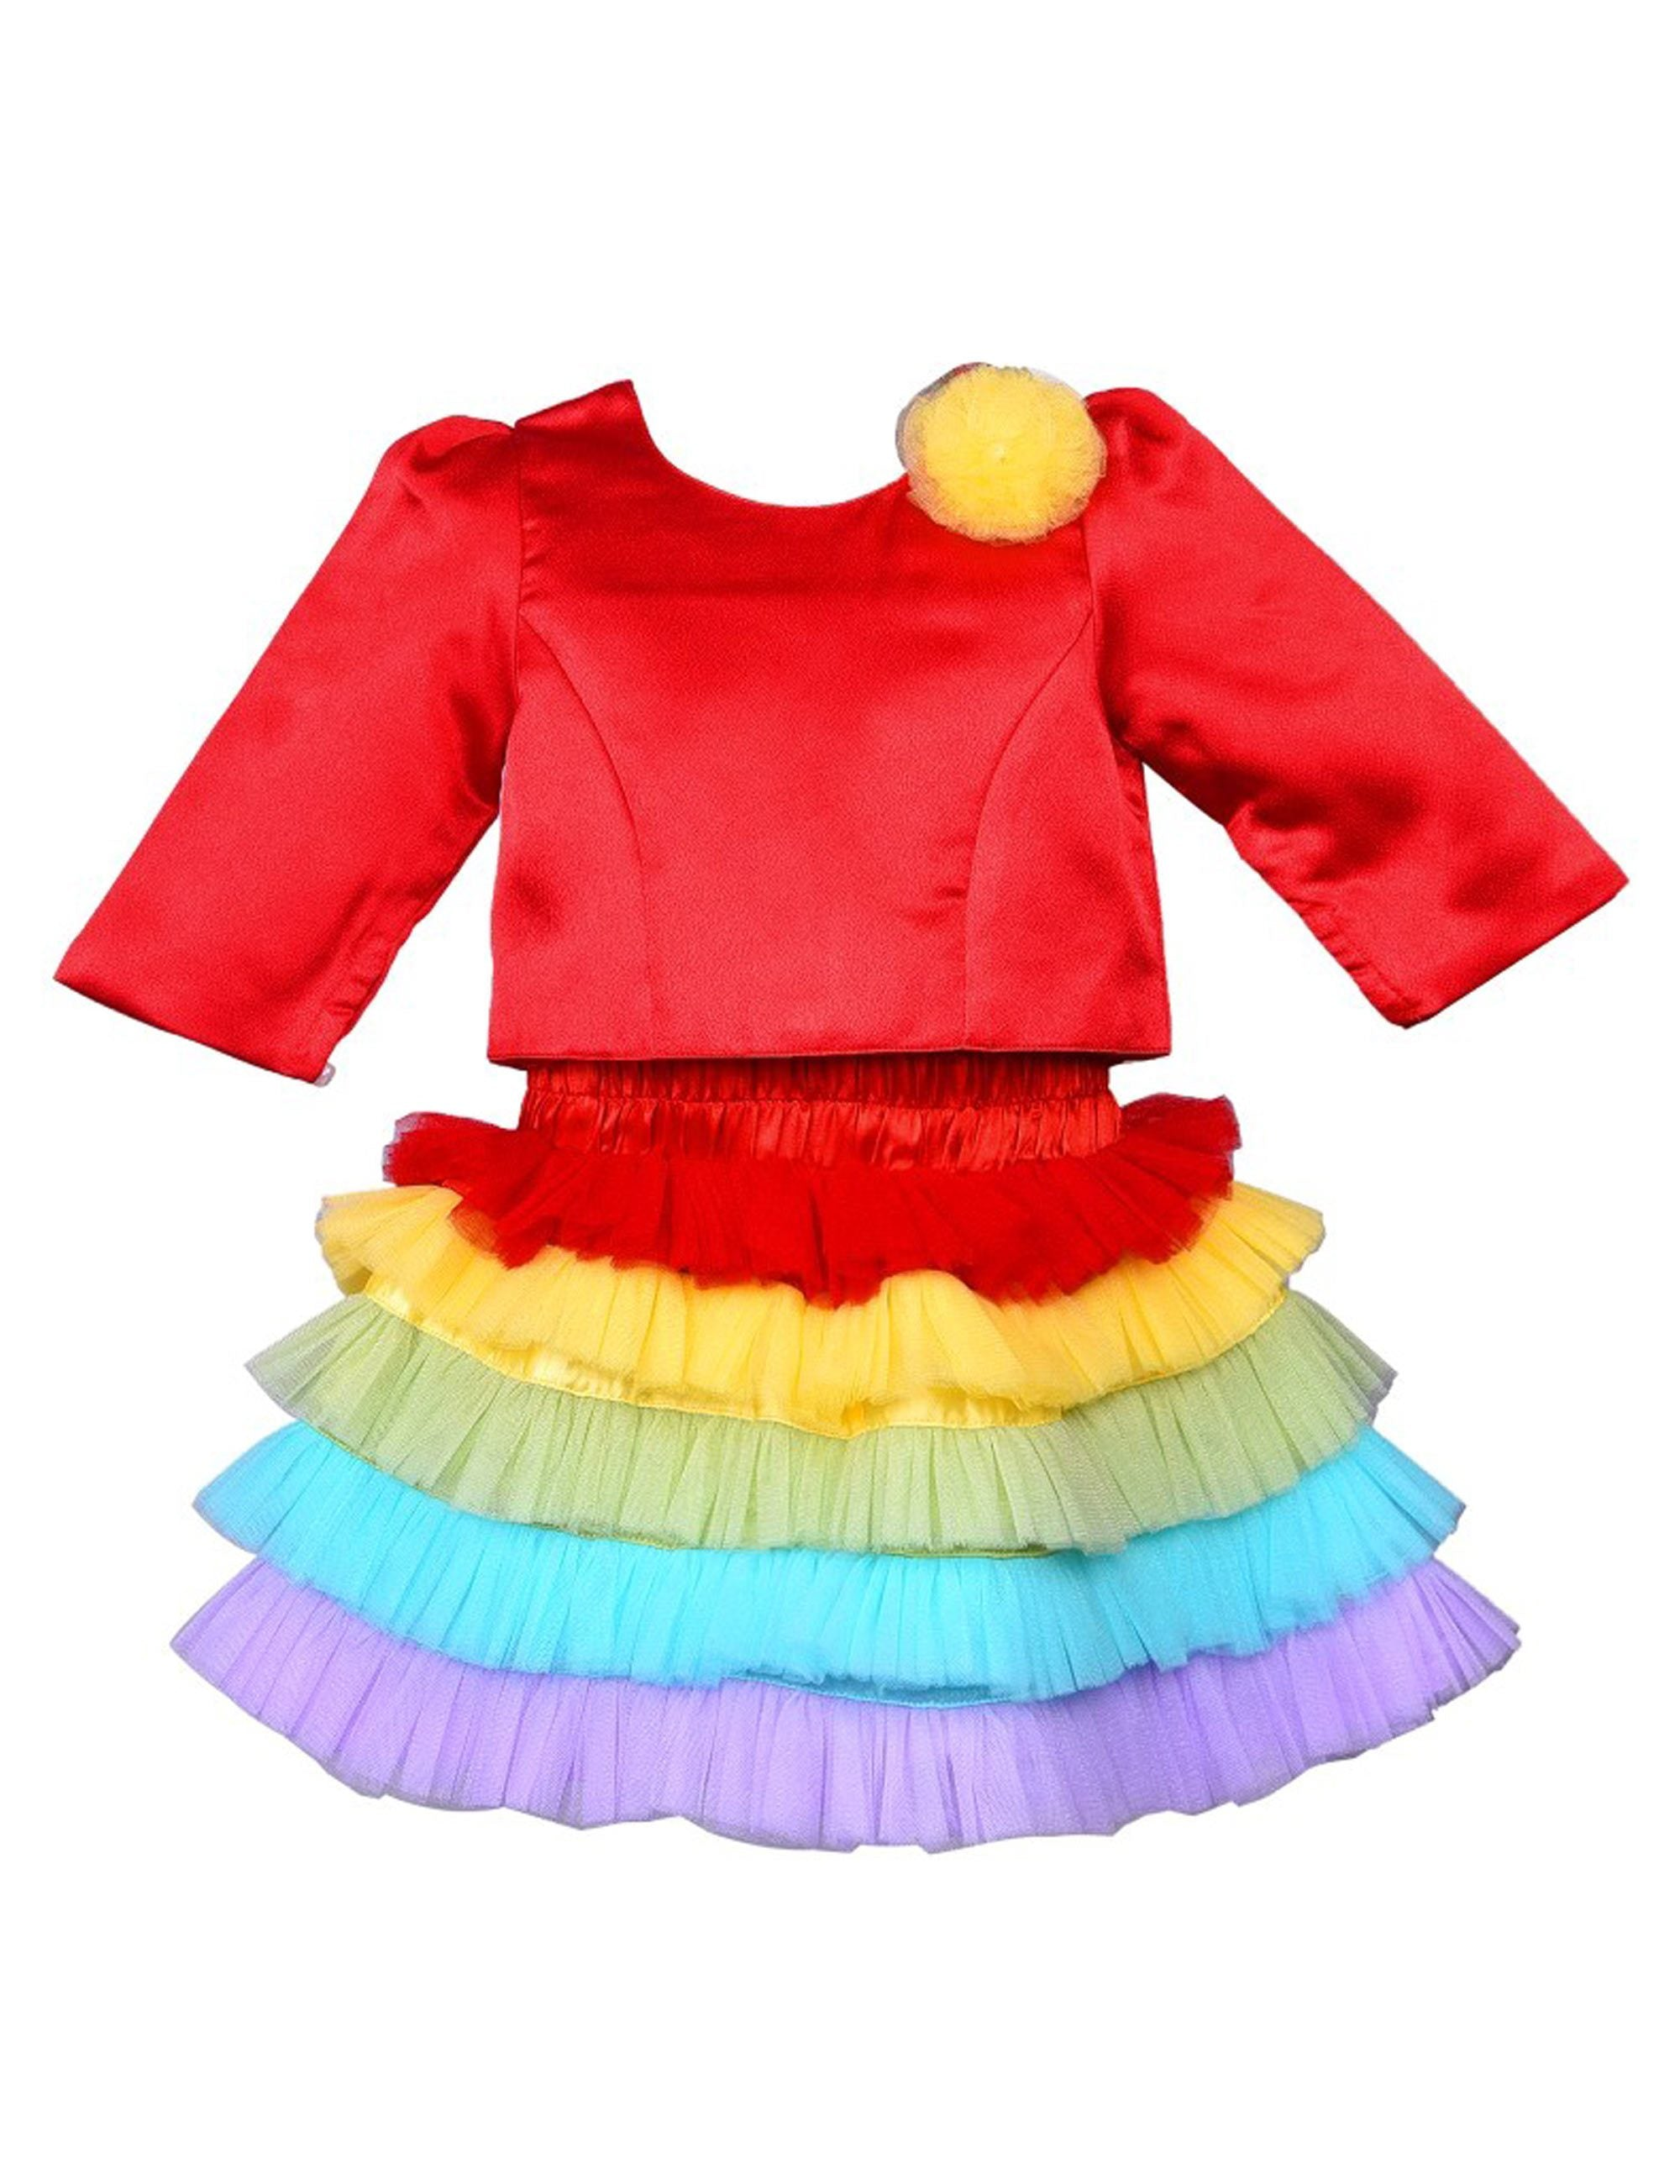 Rainbow Skirt with Red Top for Girls